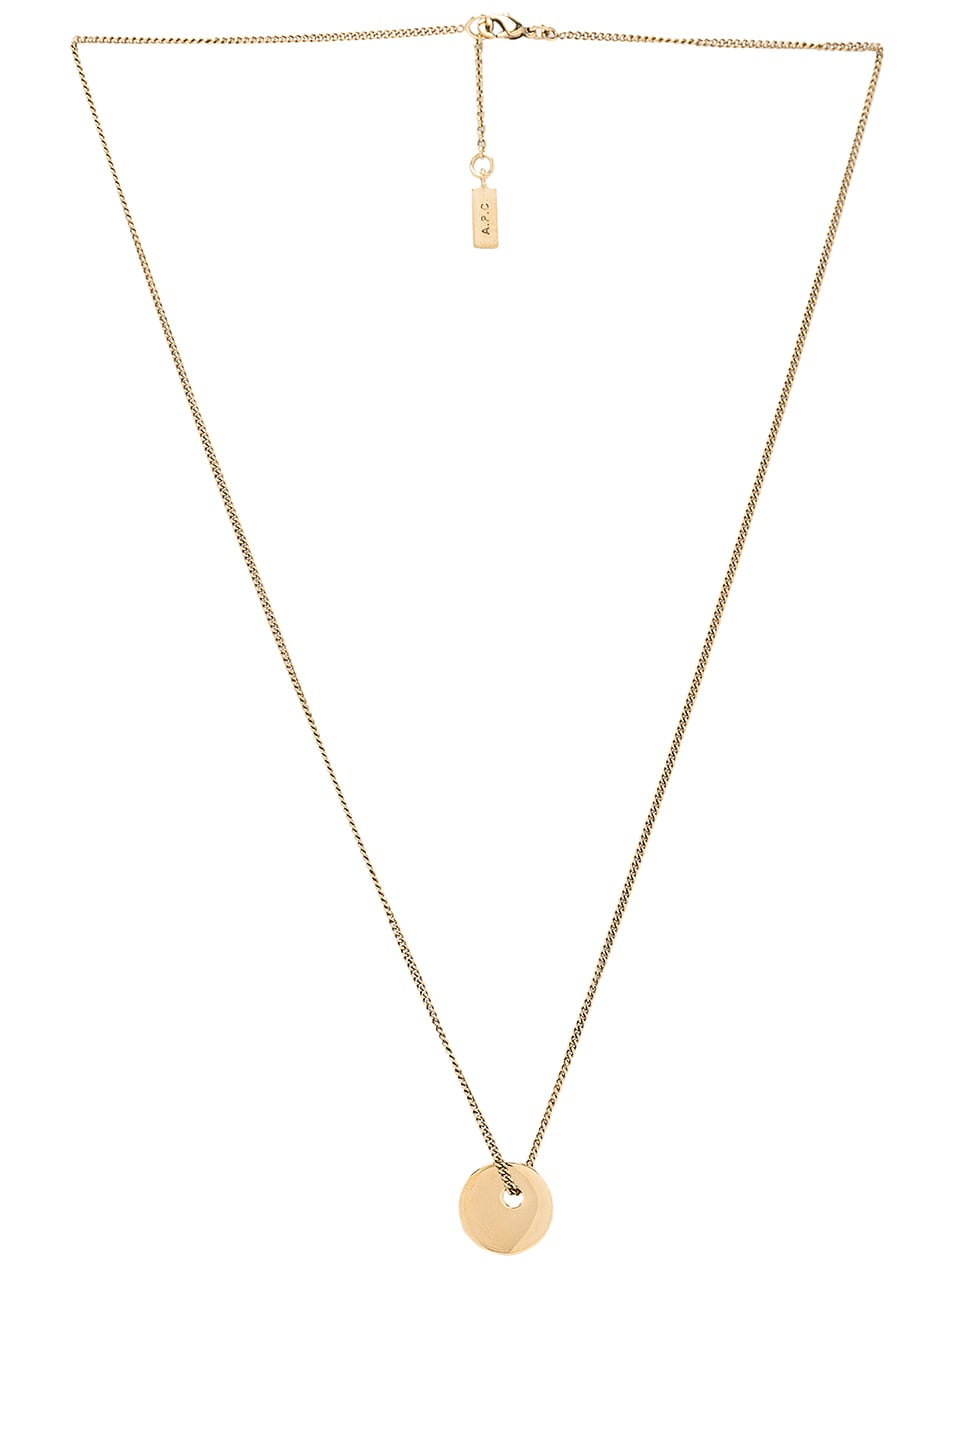 c p necklace apc s medallion pendant army a nordstrom